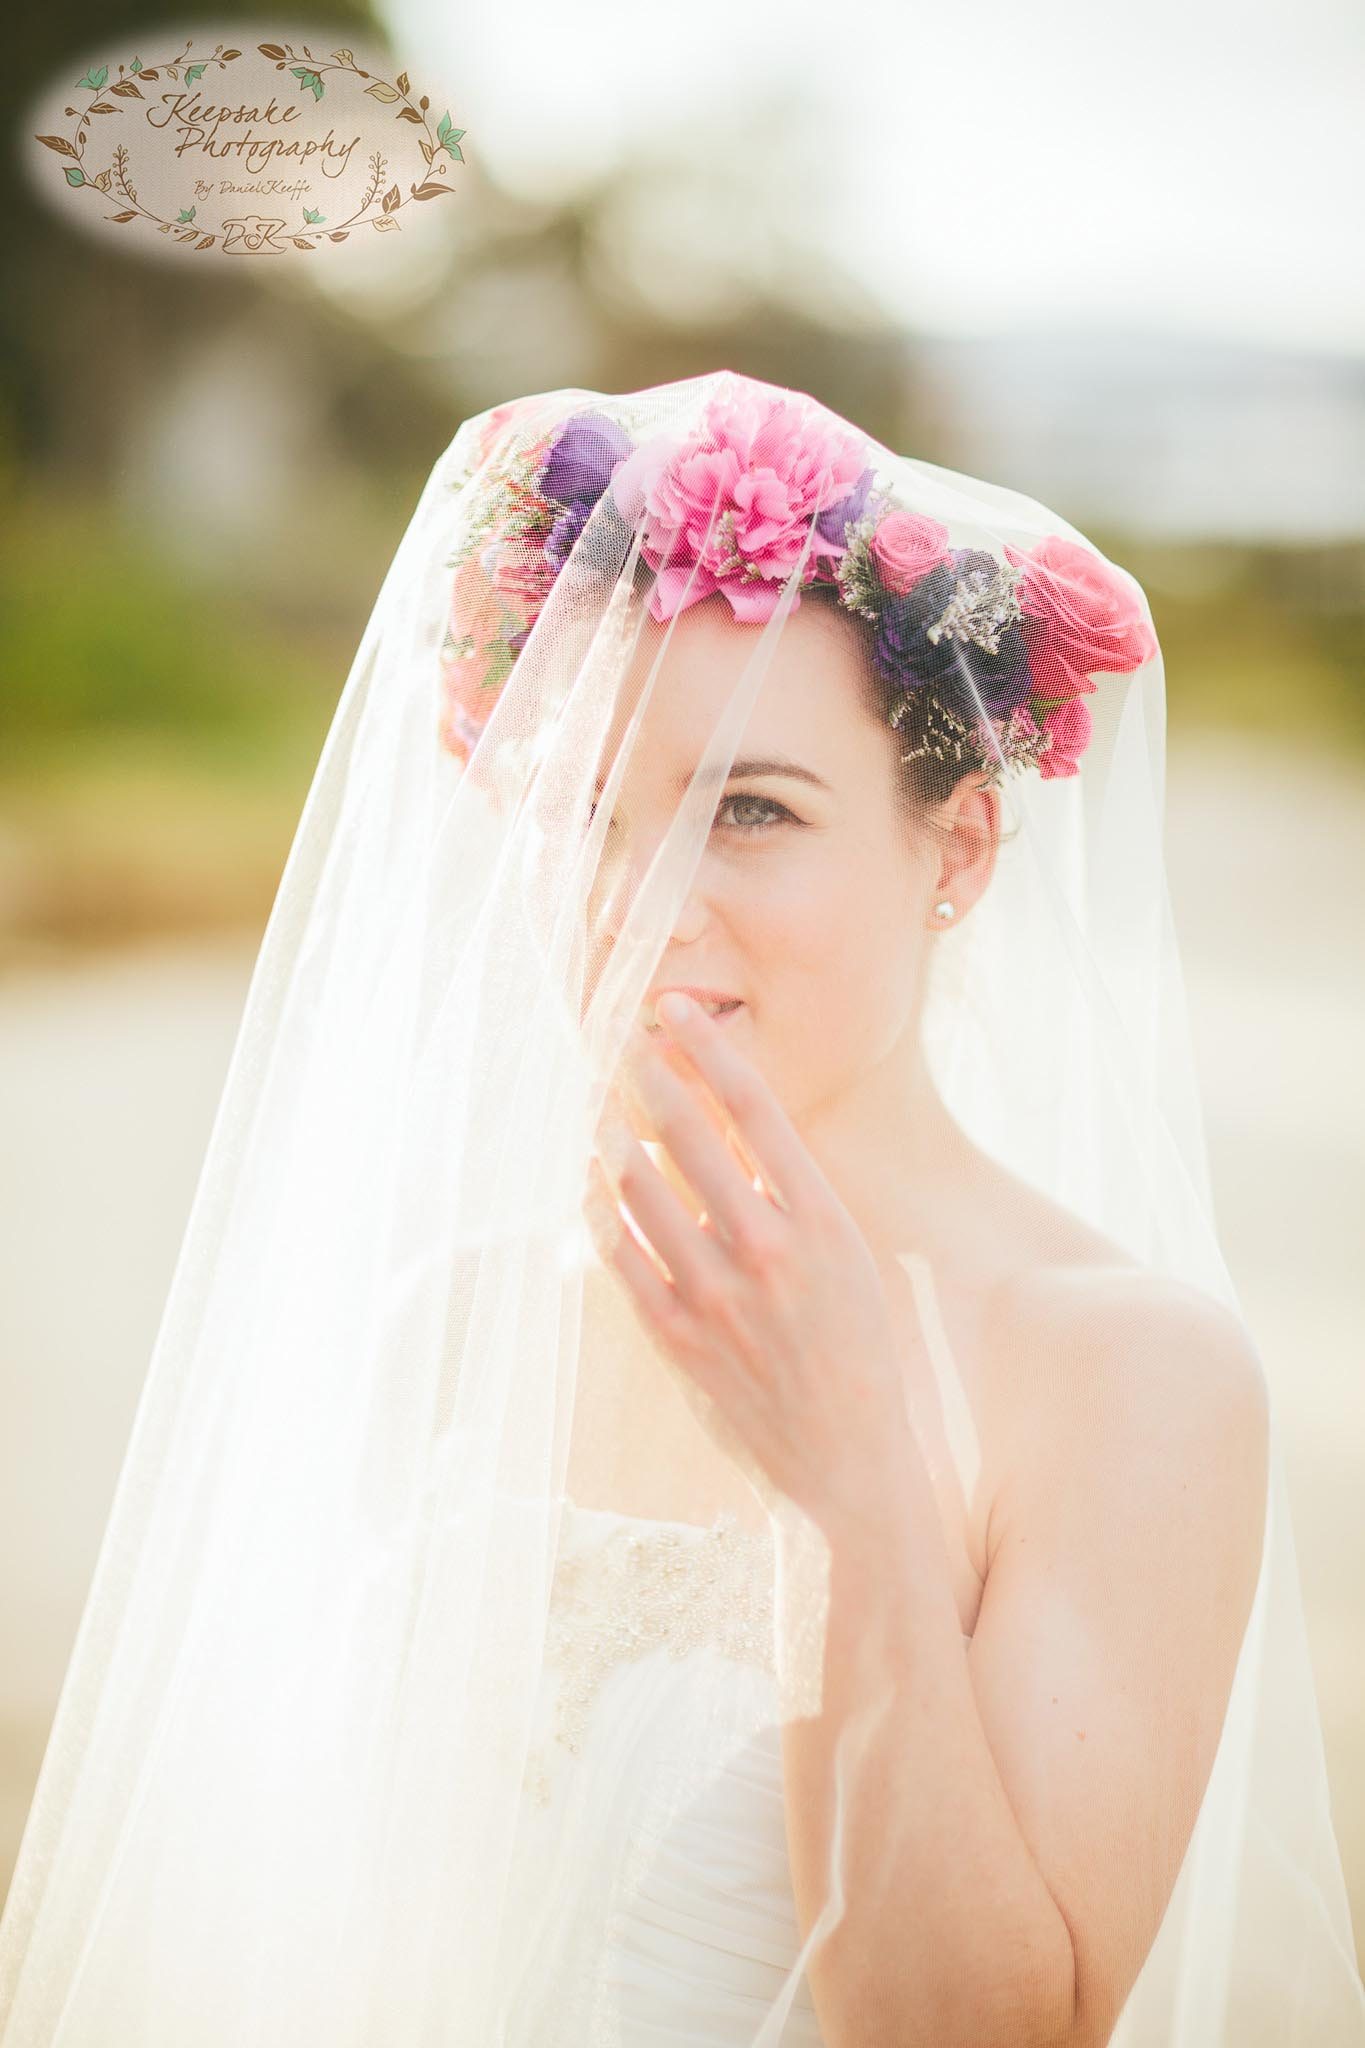 flower crown veil wedding inspiration beach sea ocean sail and swan rustic vintage trendy